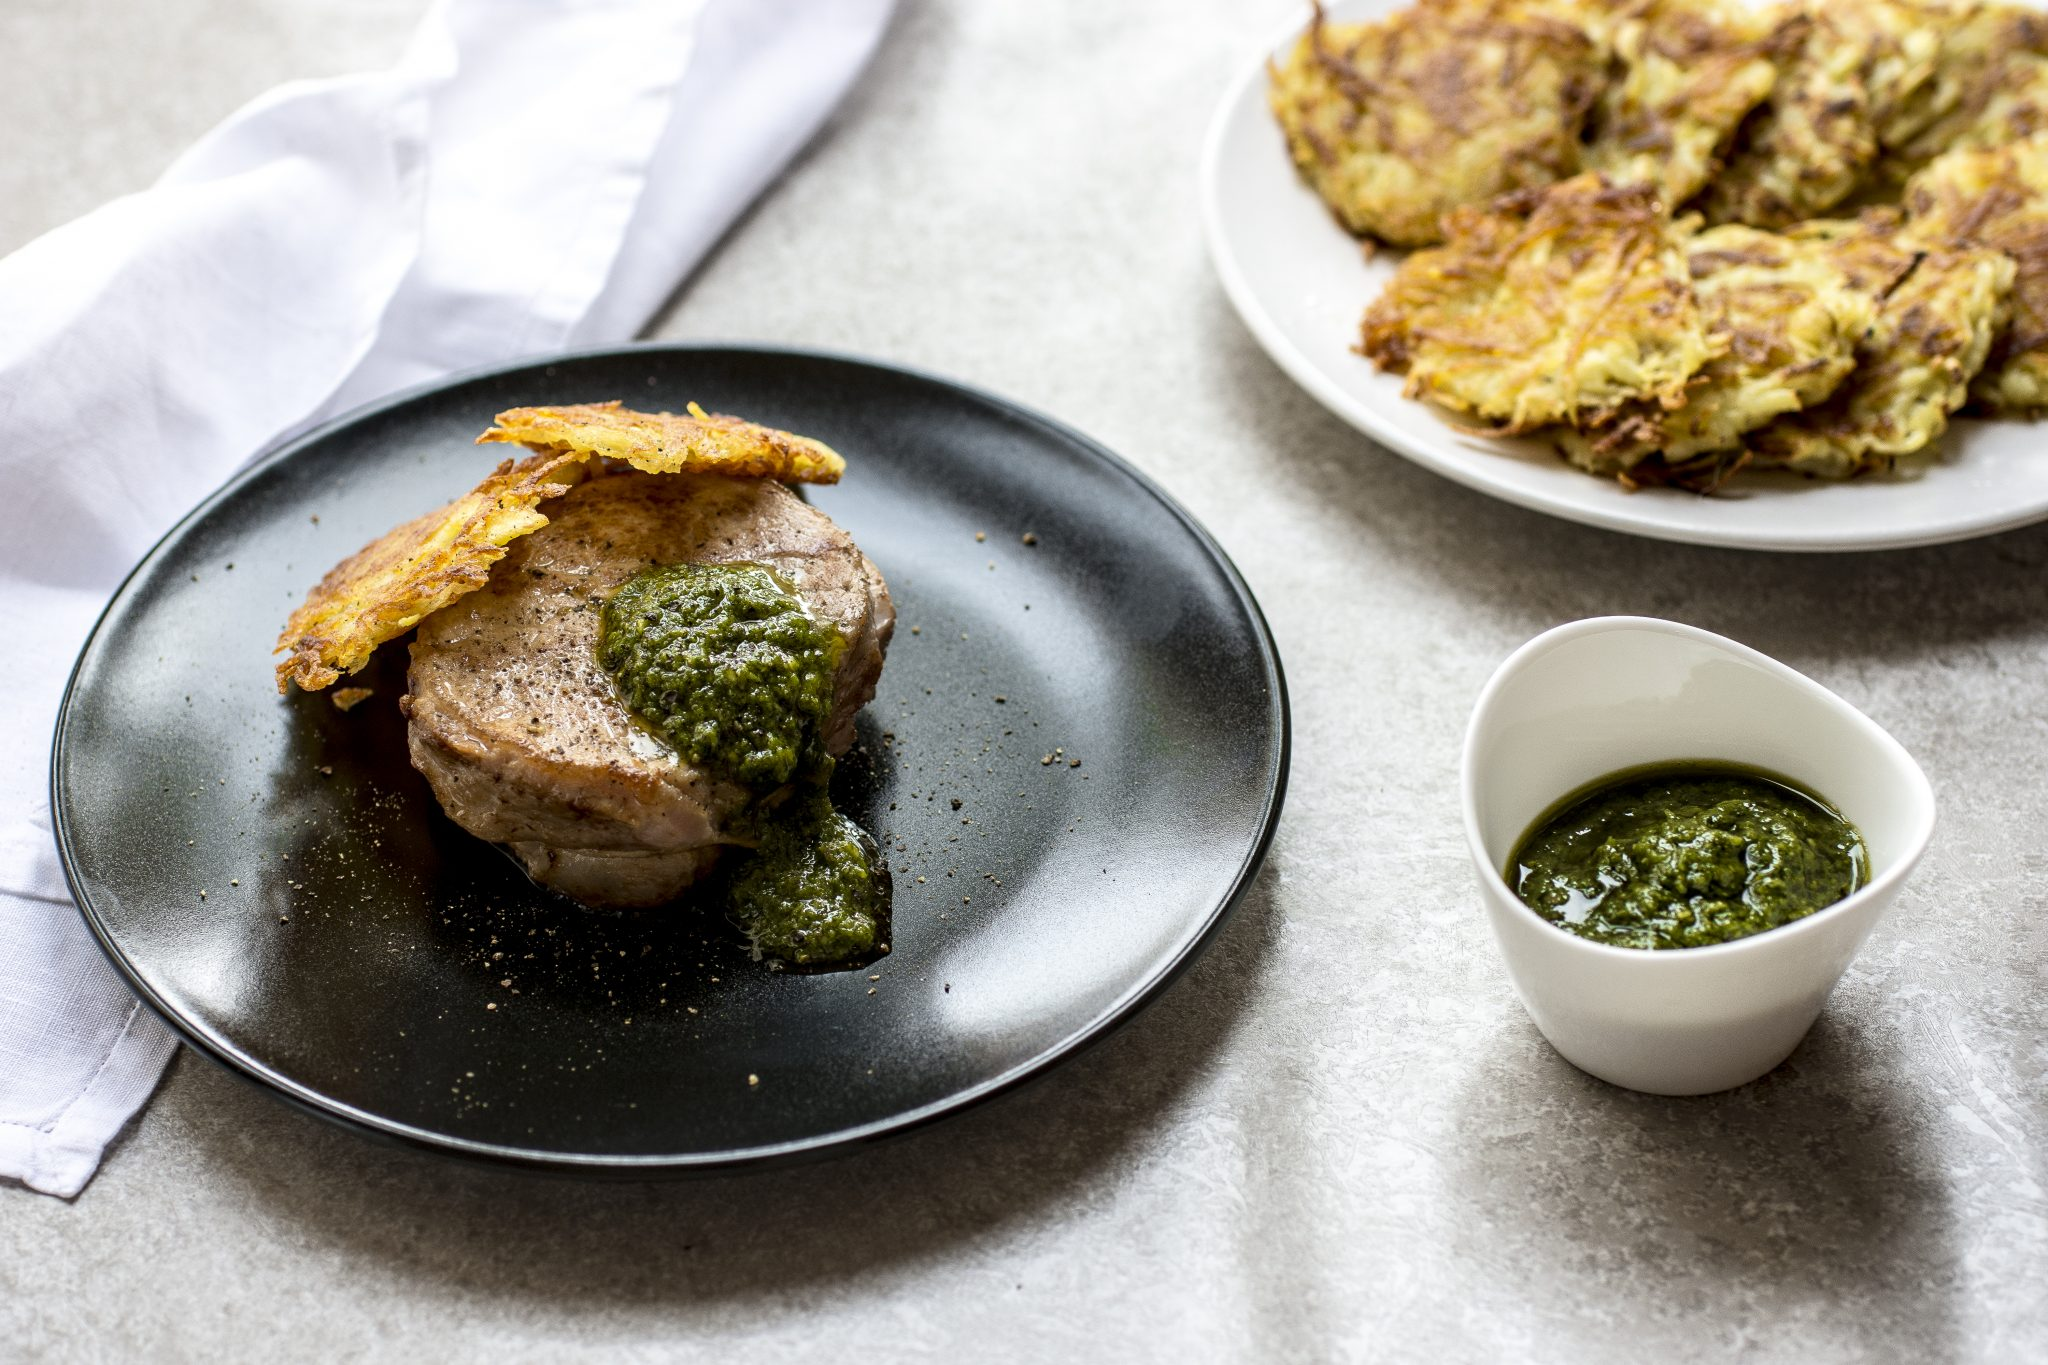 Tournedos di filetto con pesto e rösti di patate